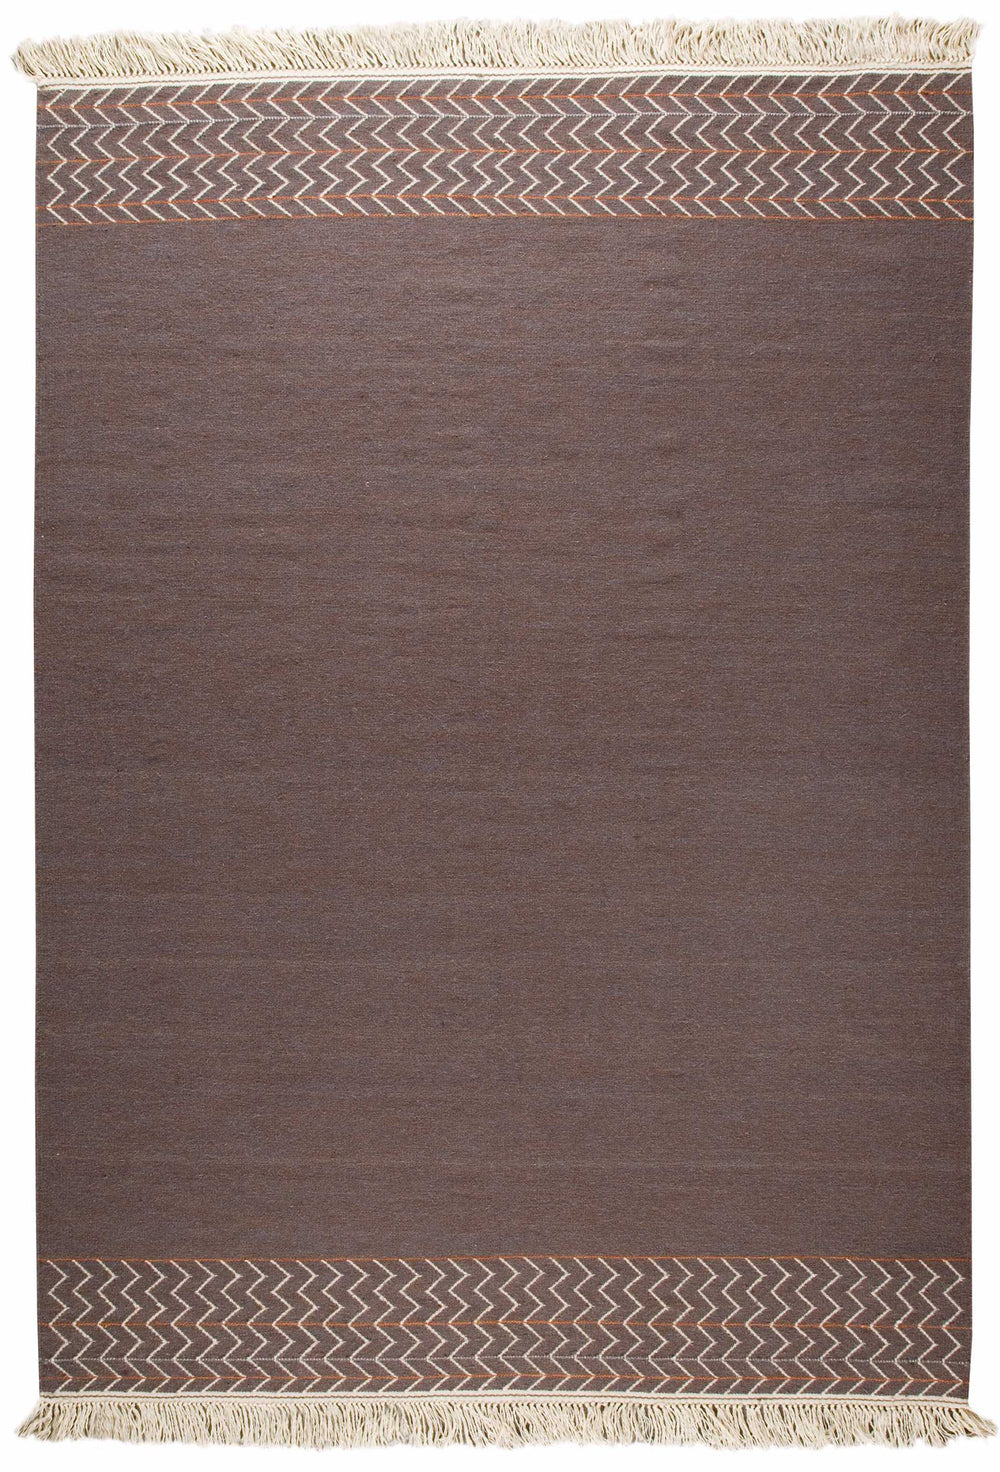 MAT The Basics 12W Valparaiso Area Rug